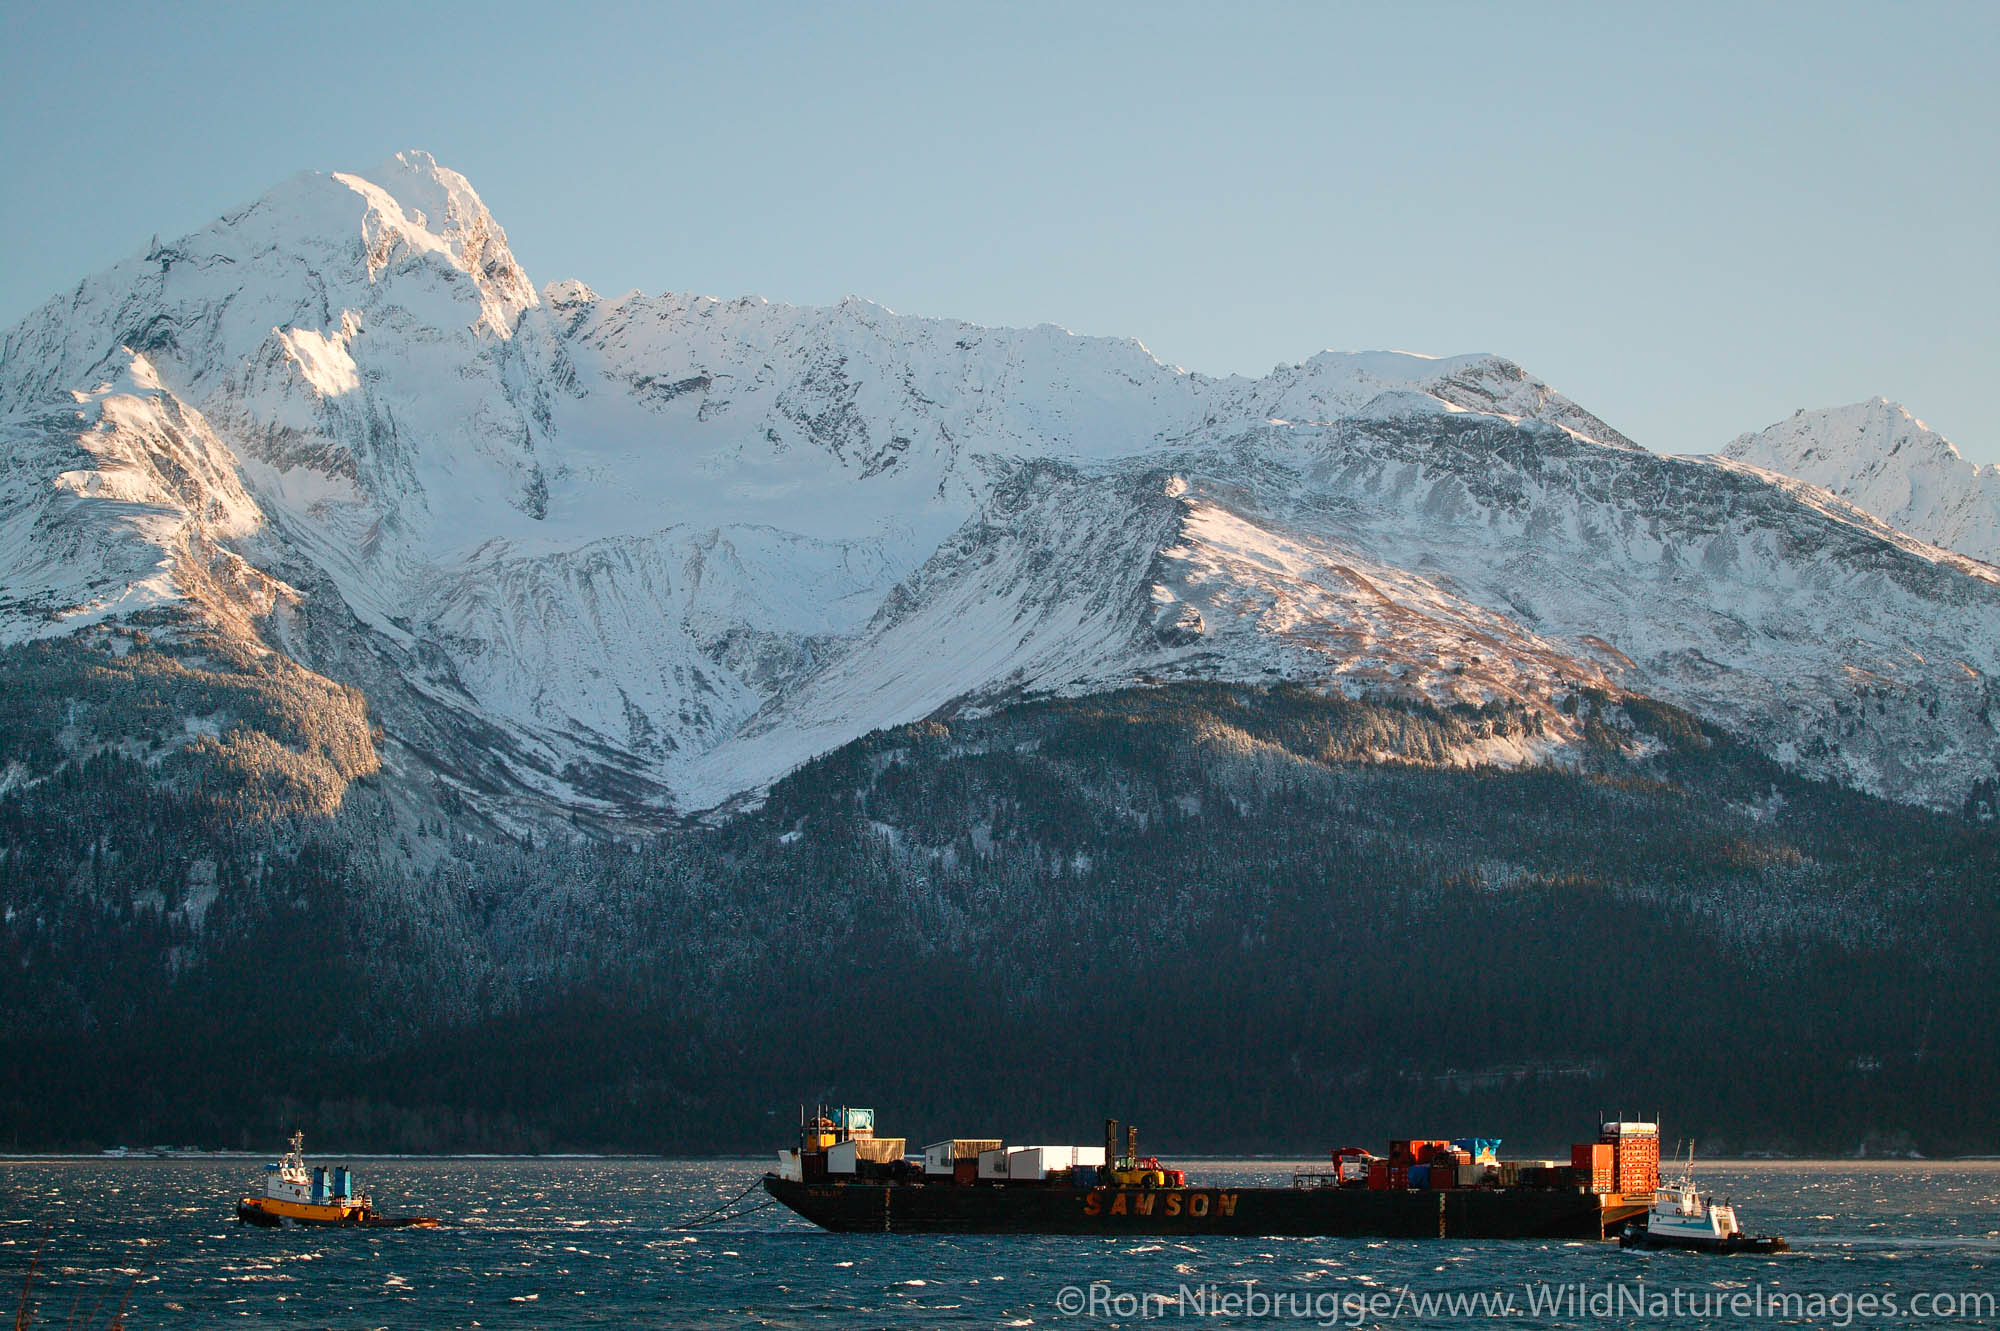 The Samson Barge St Elias is being towed by the tug Ocean Navigator in Resurrection Bay during the winter, Seward, Alaska.